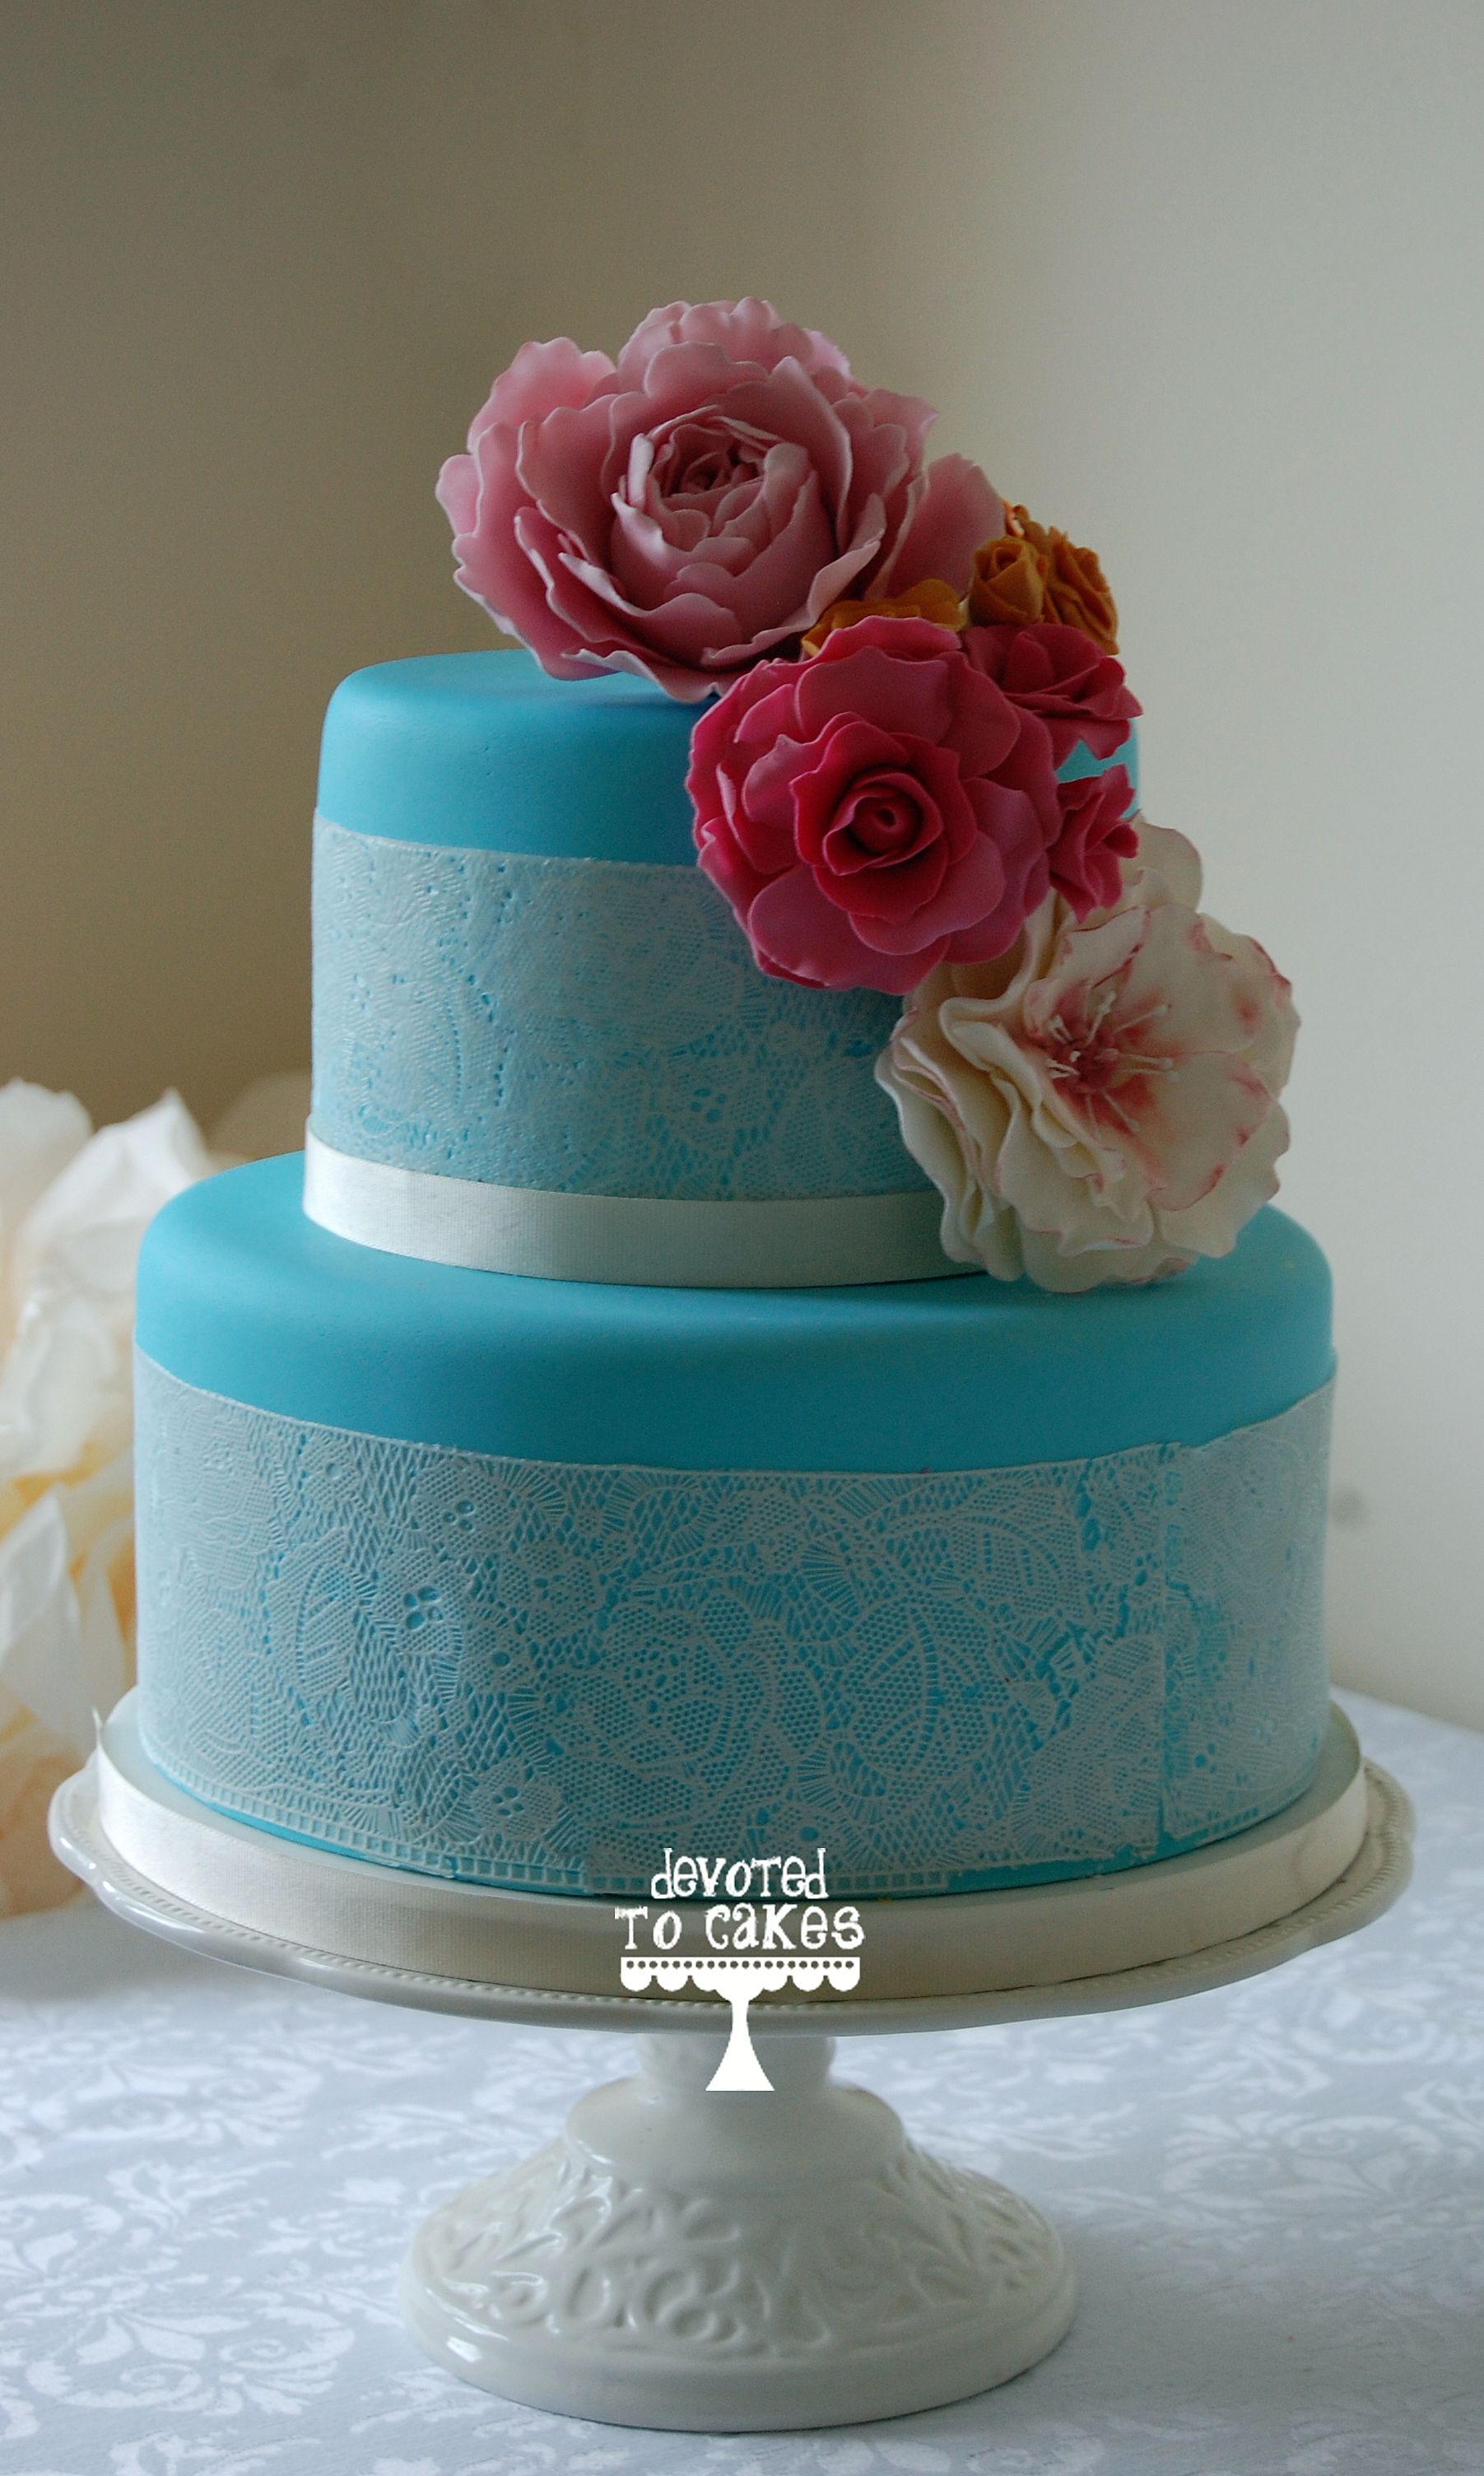 Snow and spring colours – Devoted To Cakes